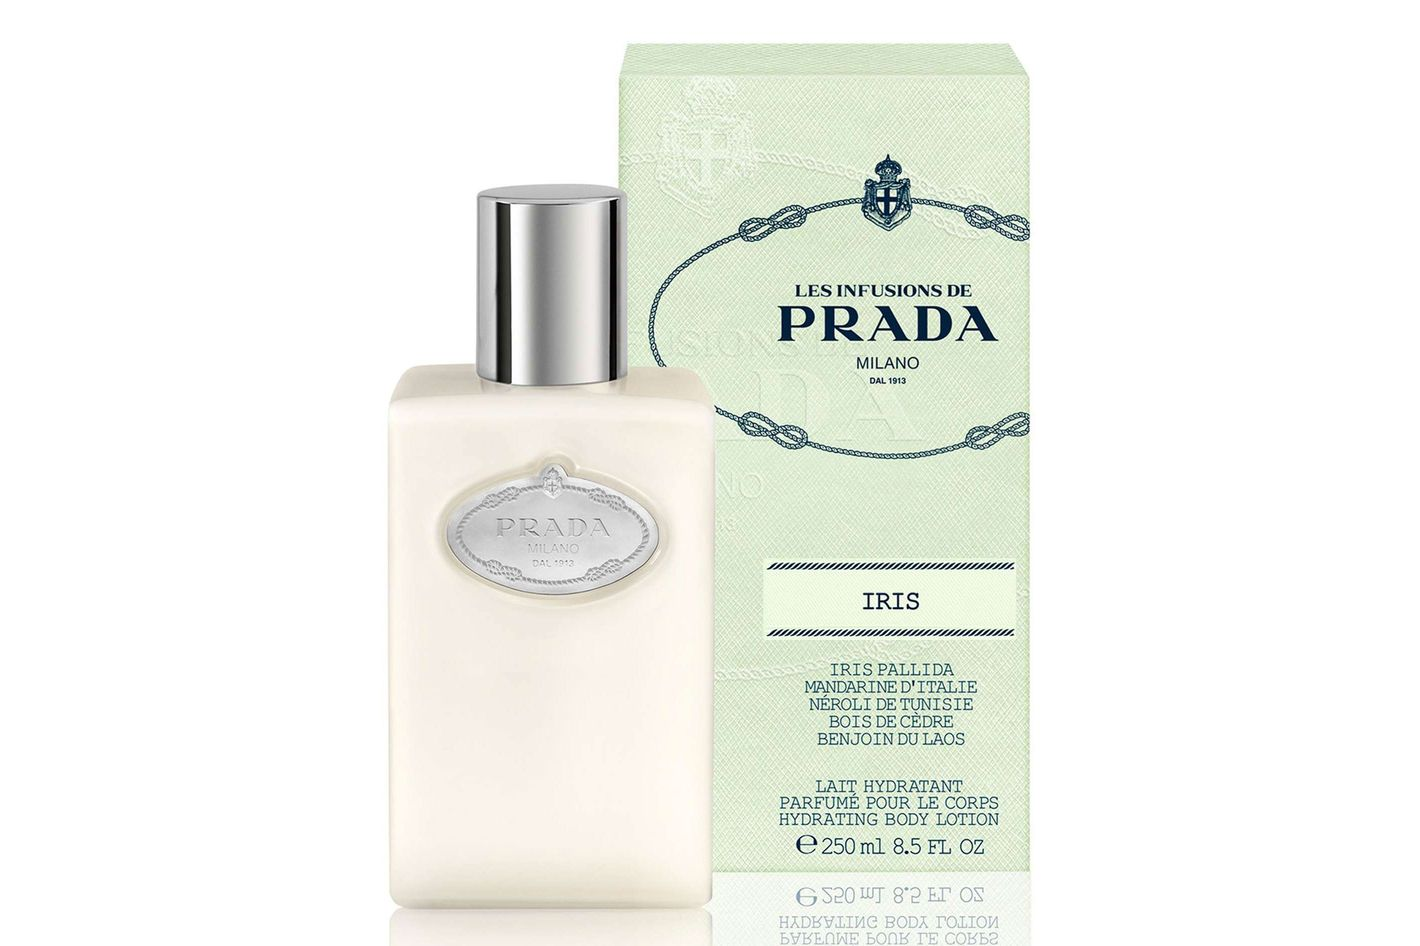 Prada Les Infusions d'Iris Body Lotion